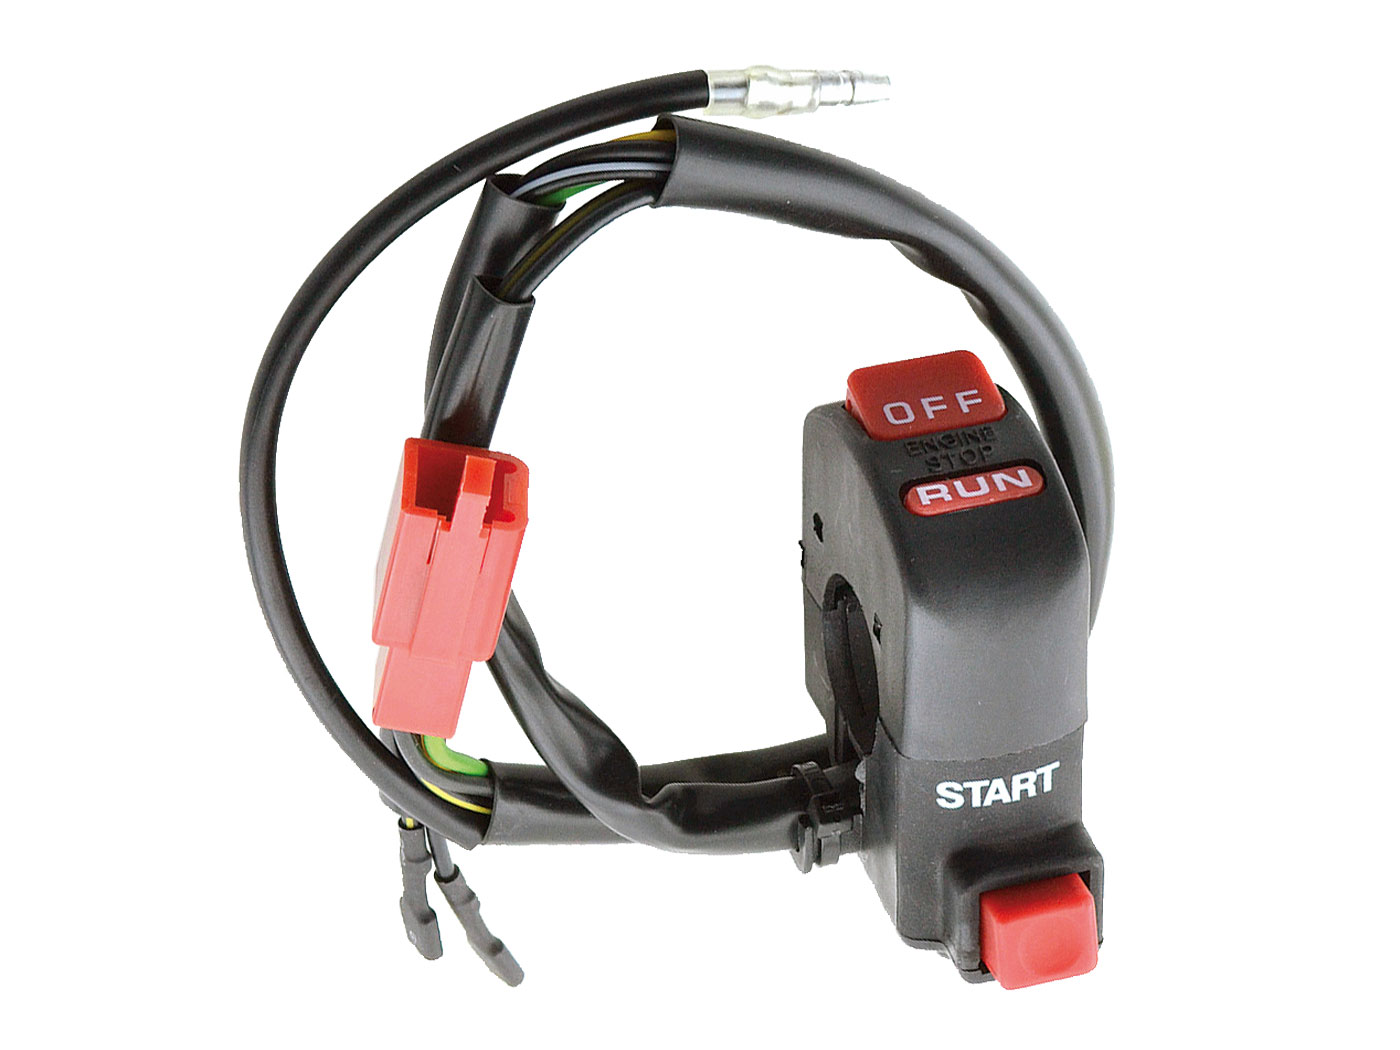 Kill switch control unit on off / start stop universal